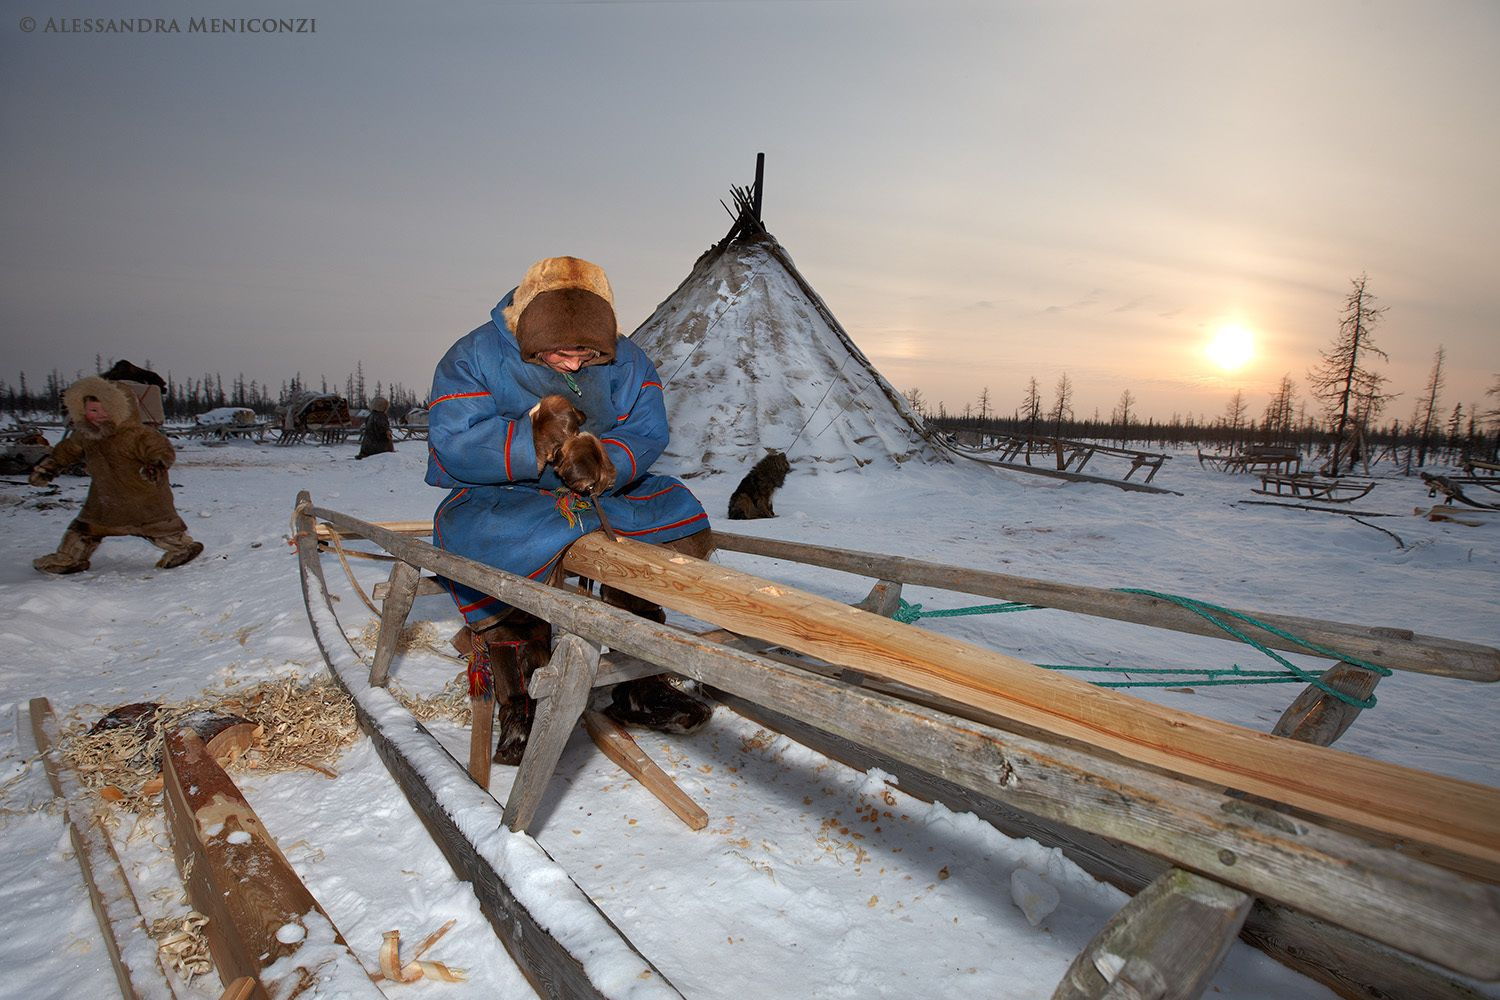 A Nenet man builds a new wooden sledge for use in reindeer herding, outside his family's chum at their winter camp.